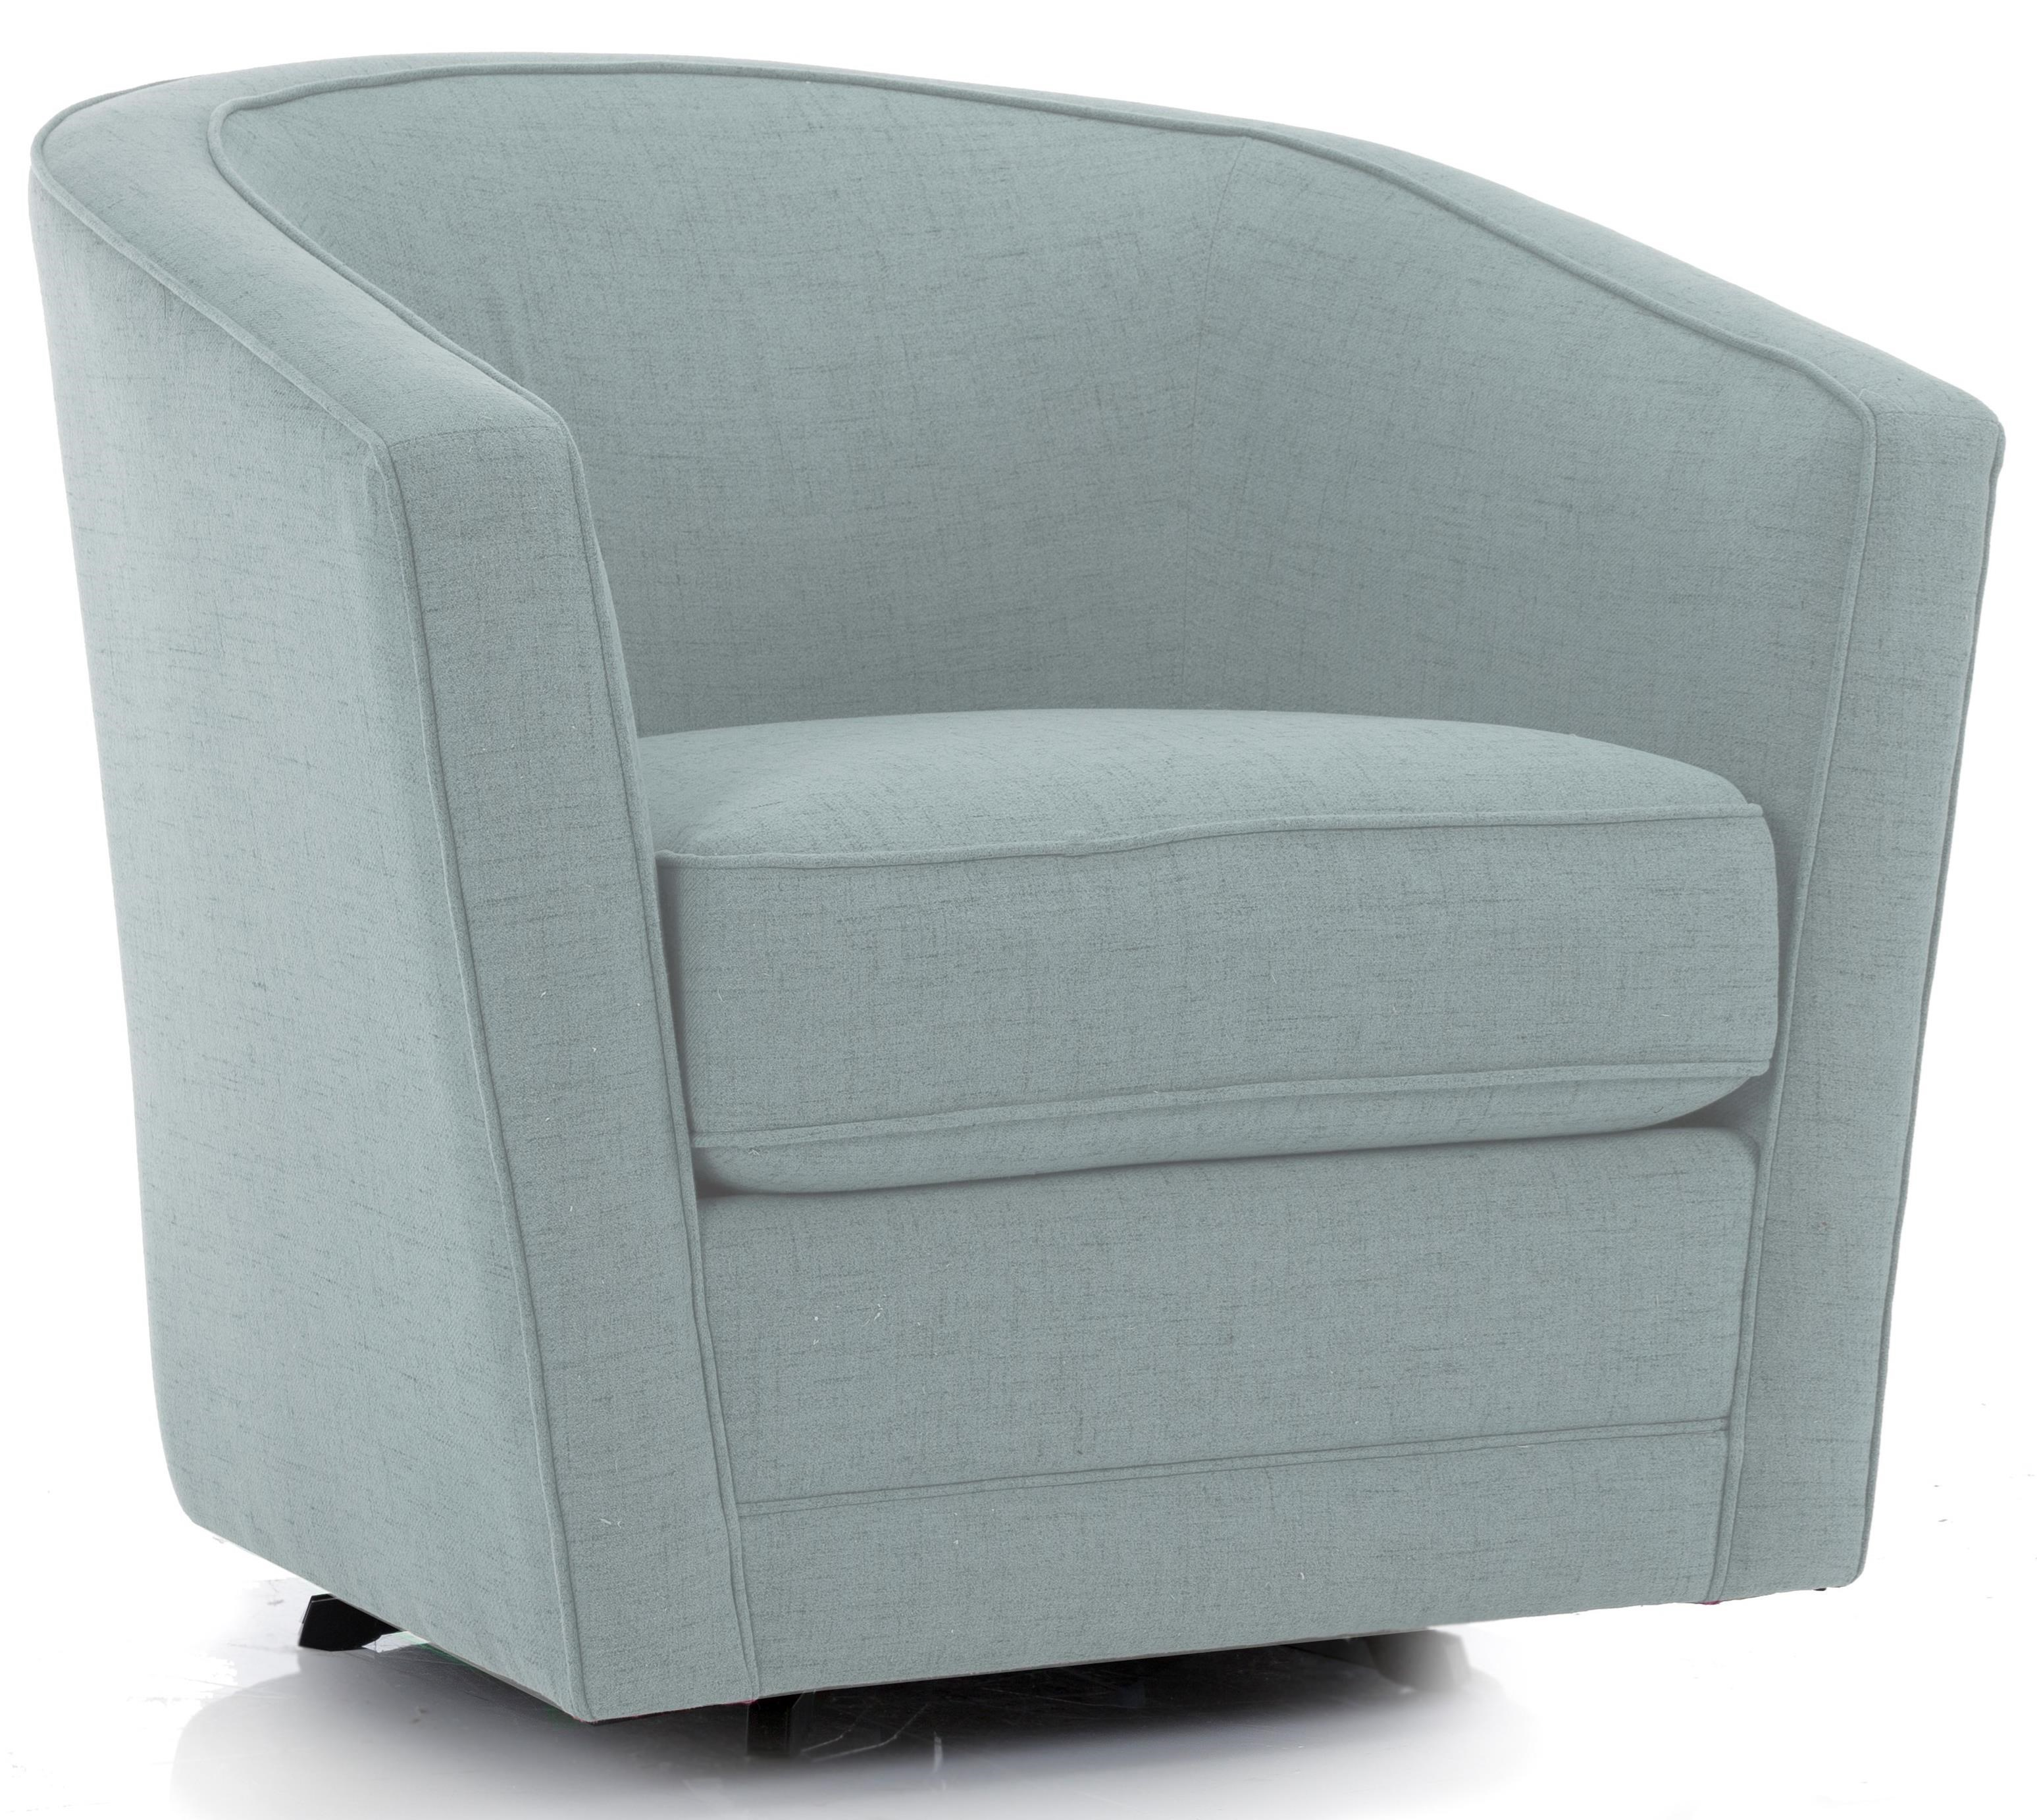 2693 Swivel Chair by Decor-Rest at Rooms for Less